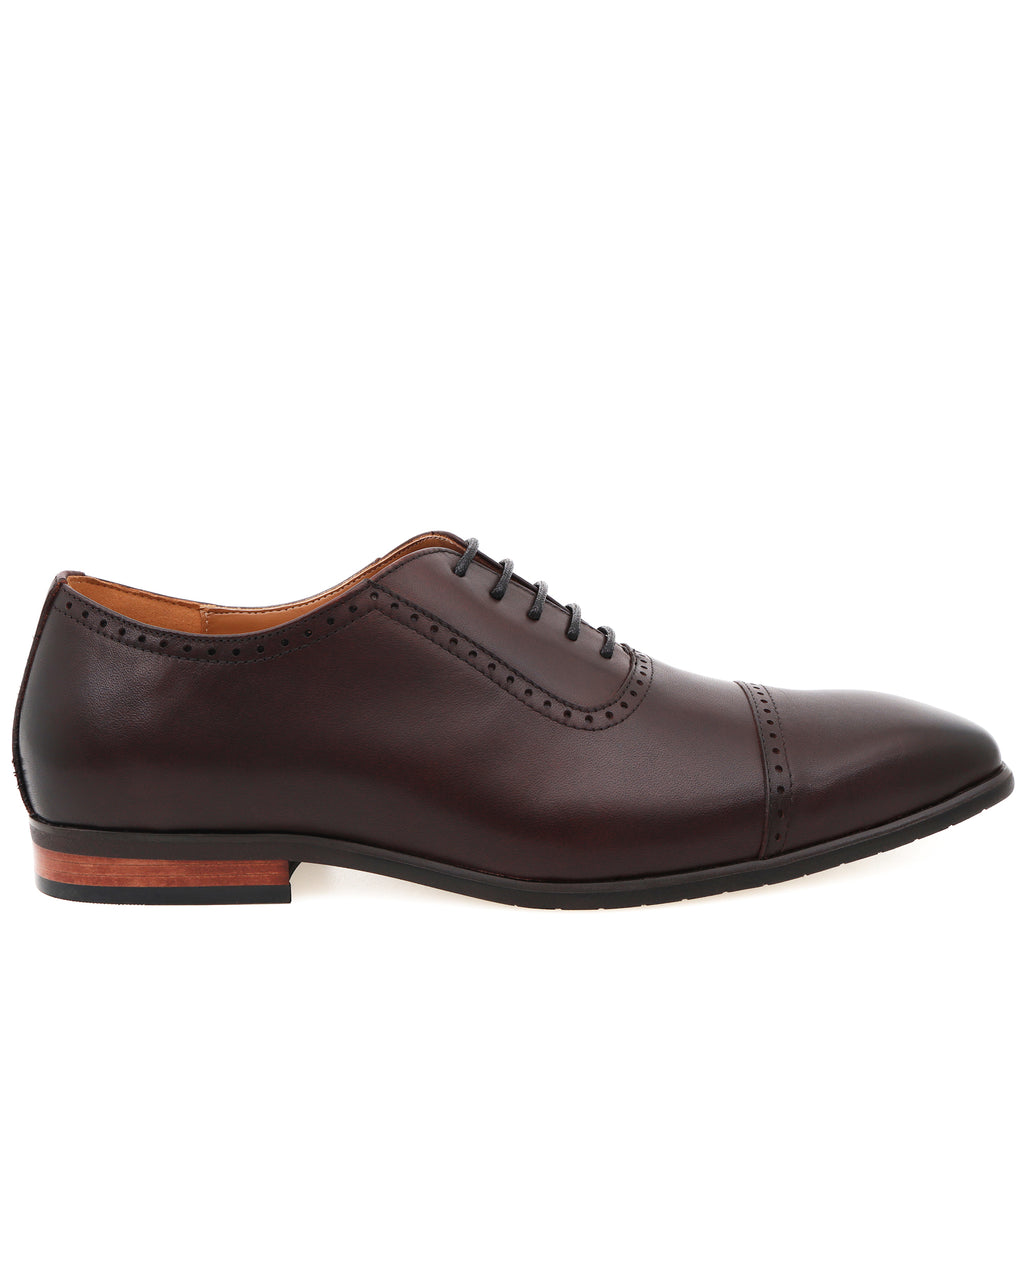 Tomaz F261 Cap Toe Brogue Oxford (Coffee)